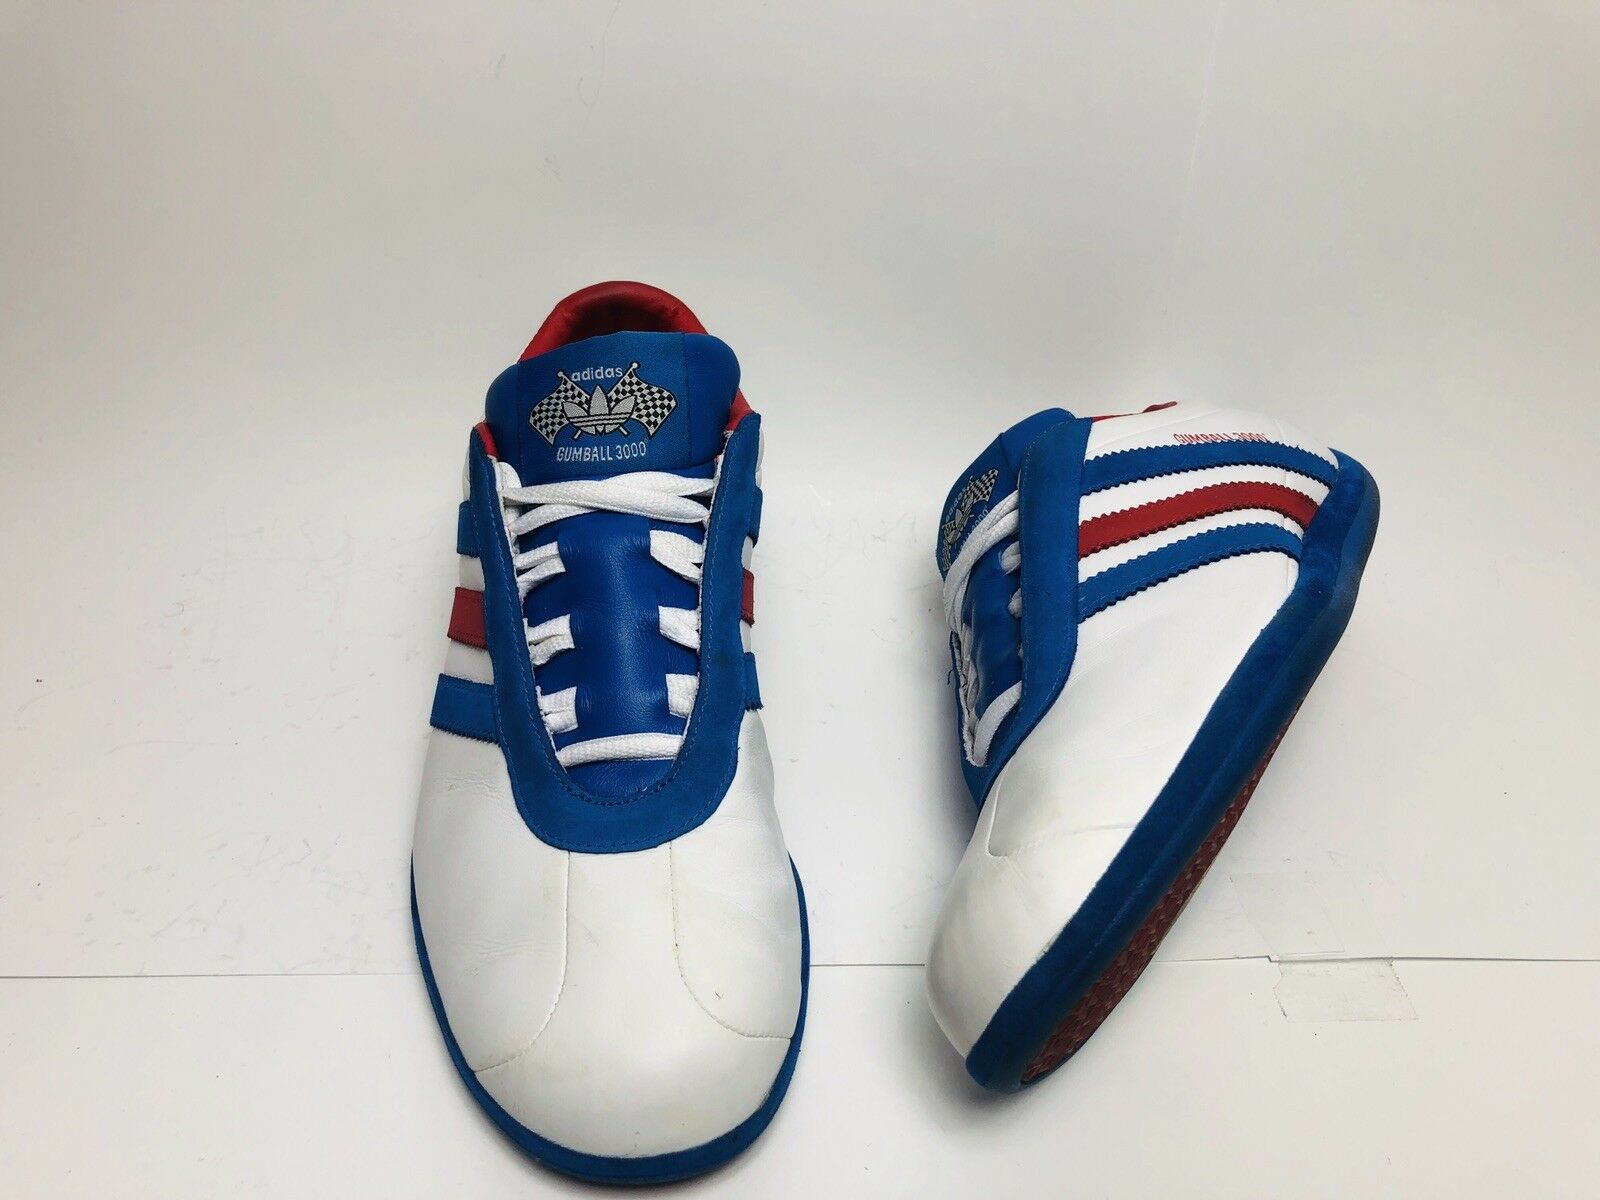 Adidas Gumball 3000 Dead Stock Leather Vintage Racing Sneakers Rare Collectors